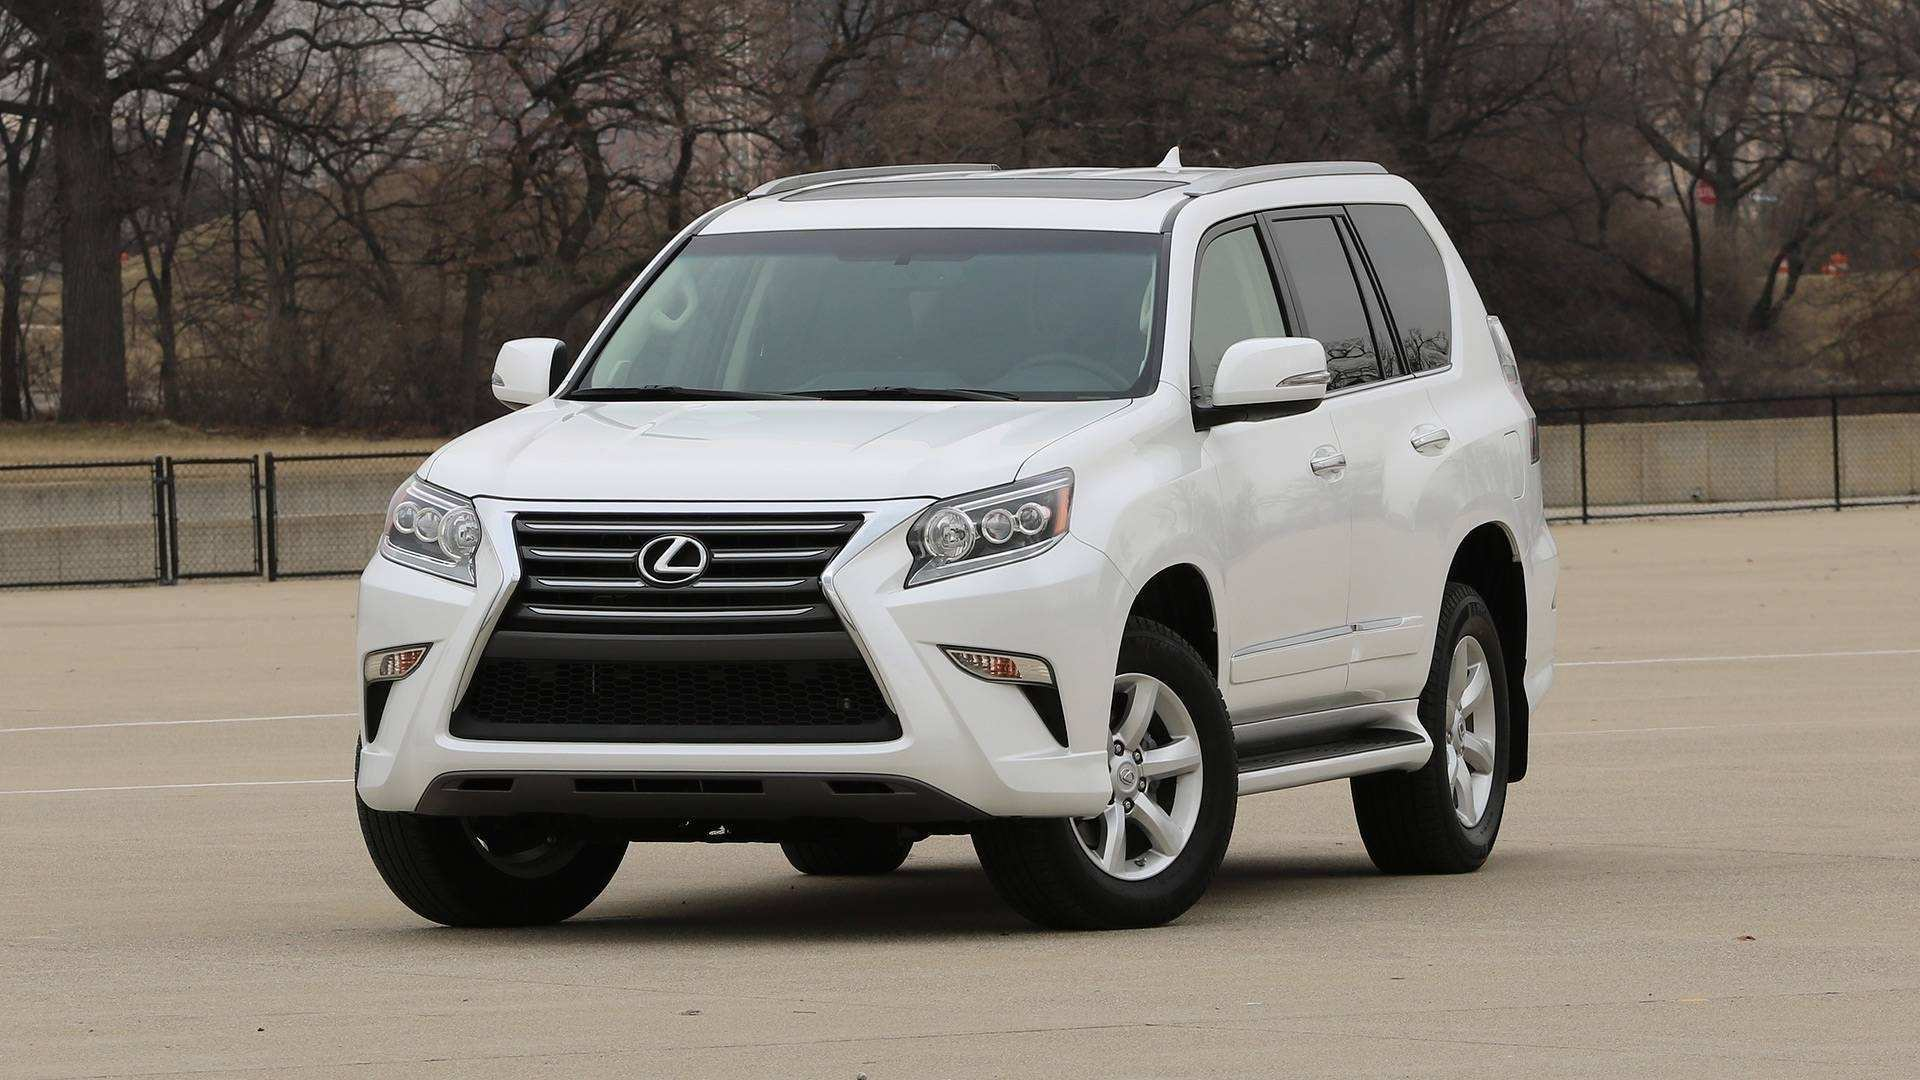 96 New When Will The 2020 Lexus Gx Come Out Price And Release Date